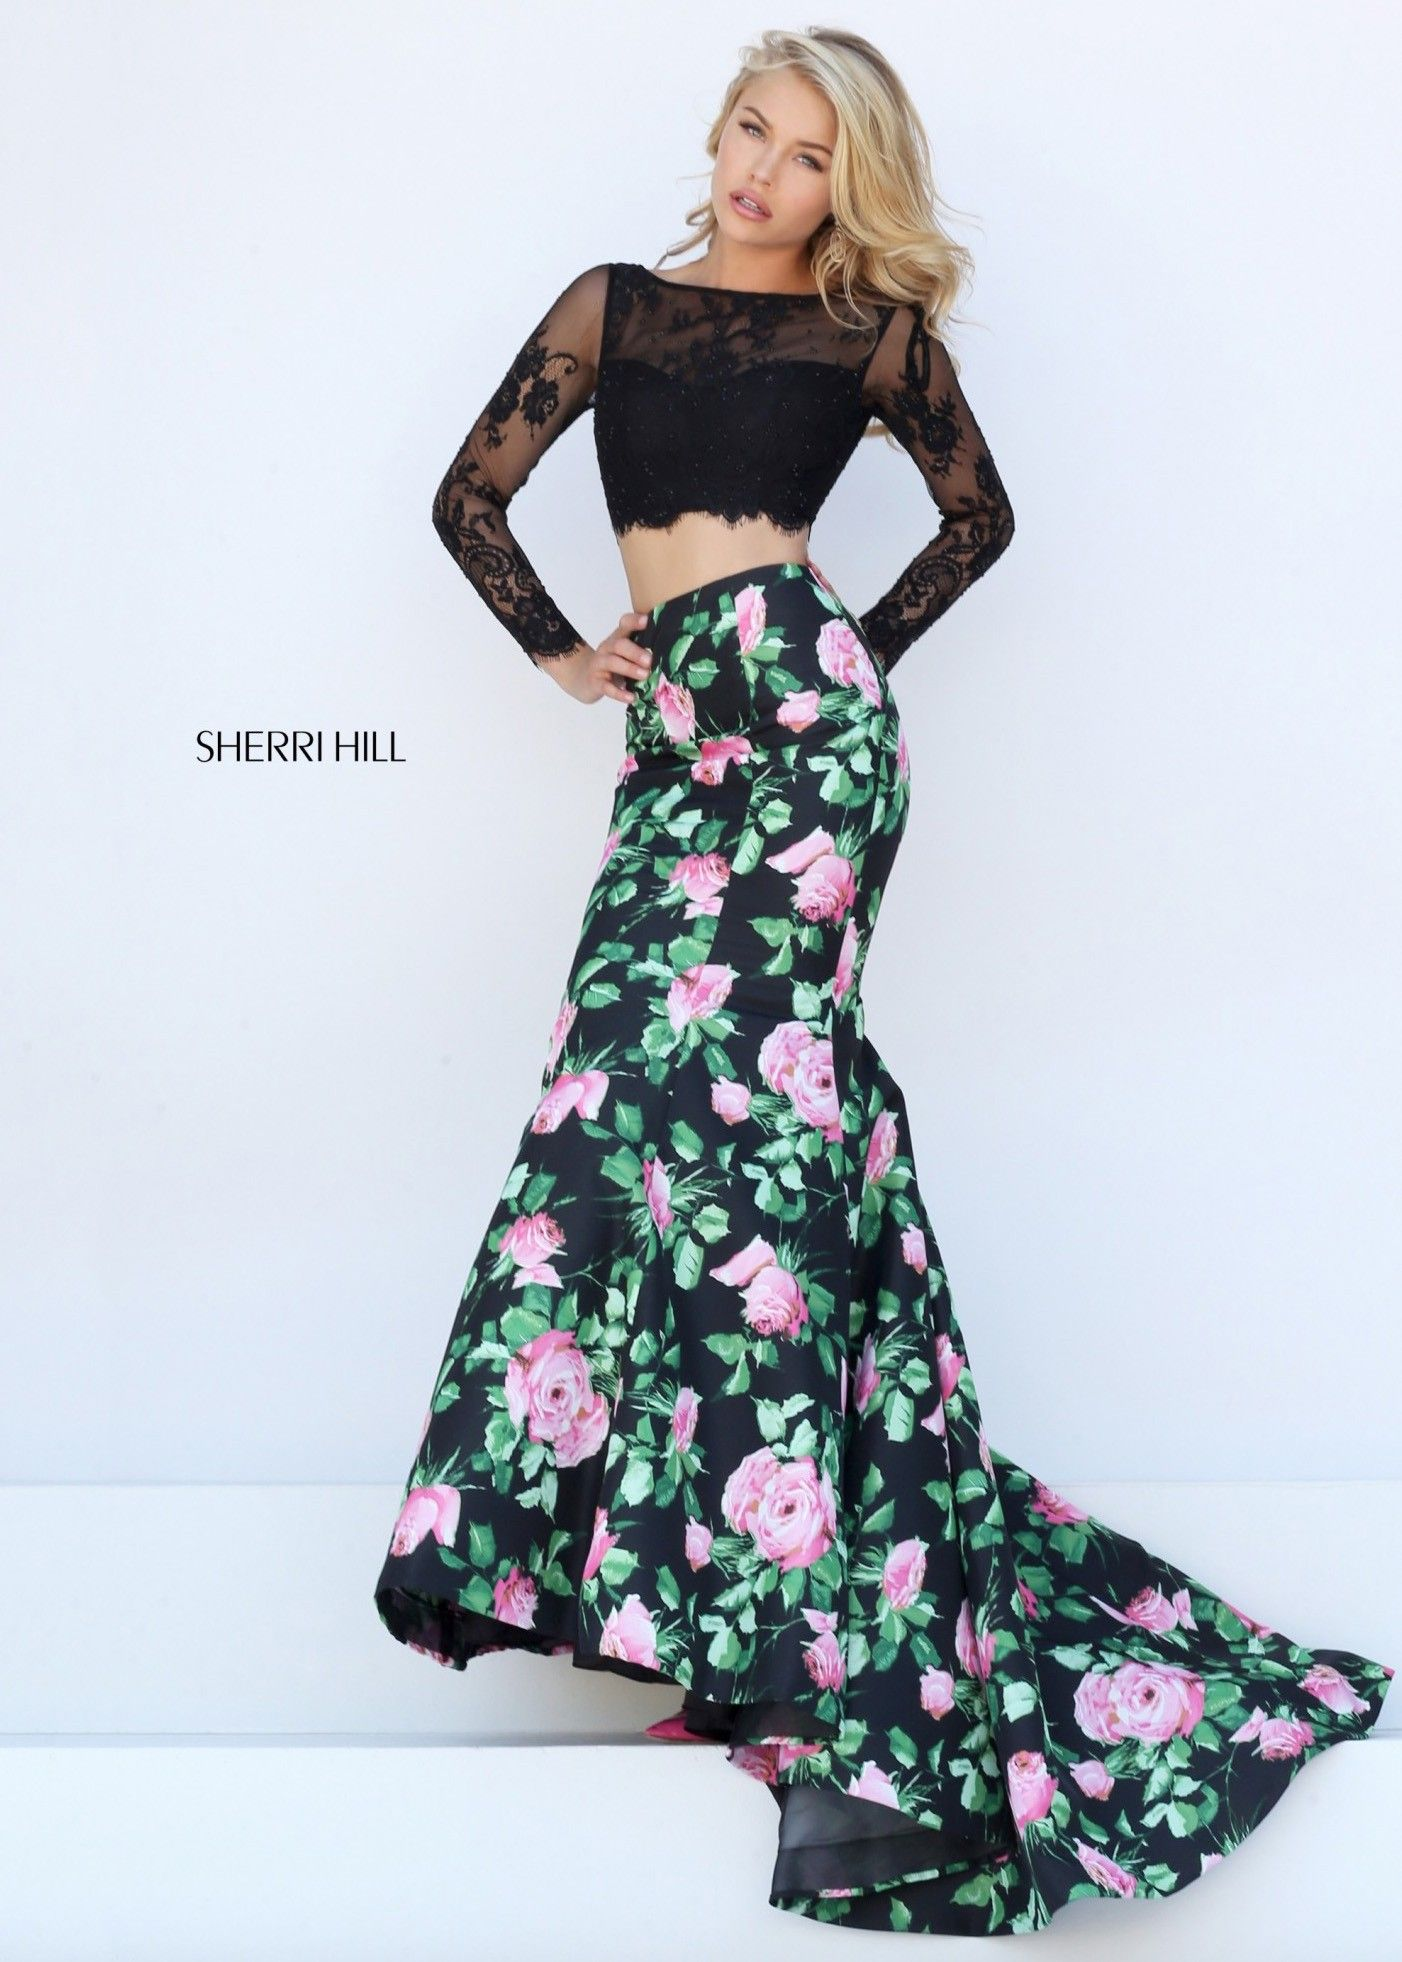 e1c1b1bbb264 ... Neck Court Train Satin Tulle Prom Dress With Appliques Lace. Sherri Hill  50400 Black/Pink Long Sleeve Lace Two Piece Mermaid Gown